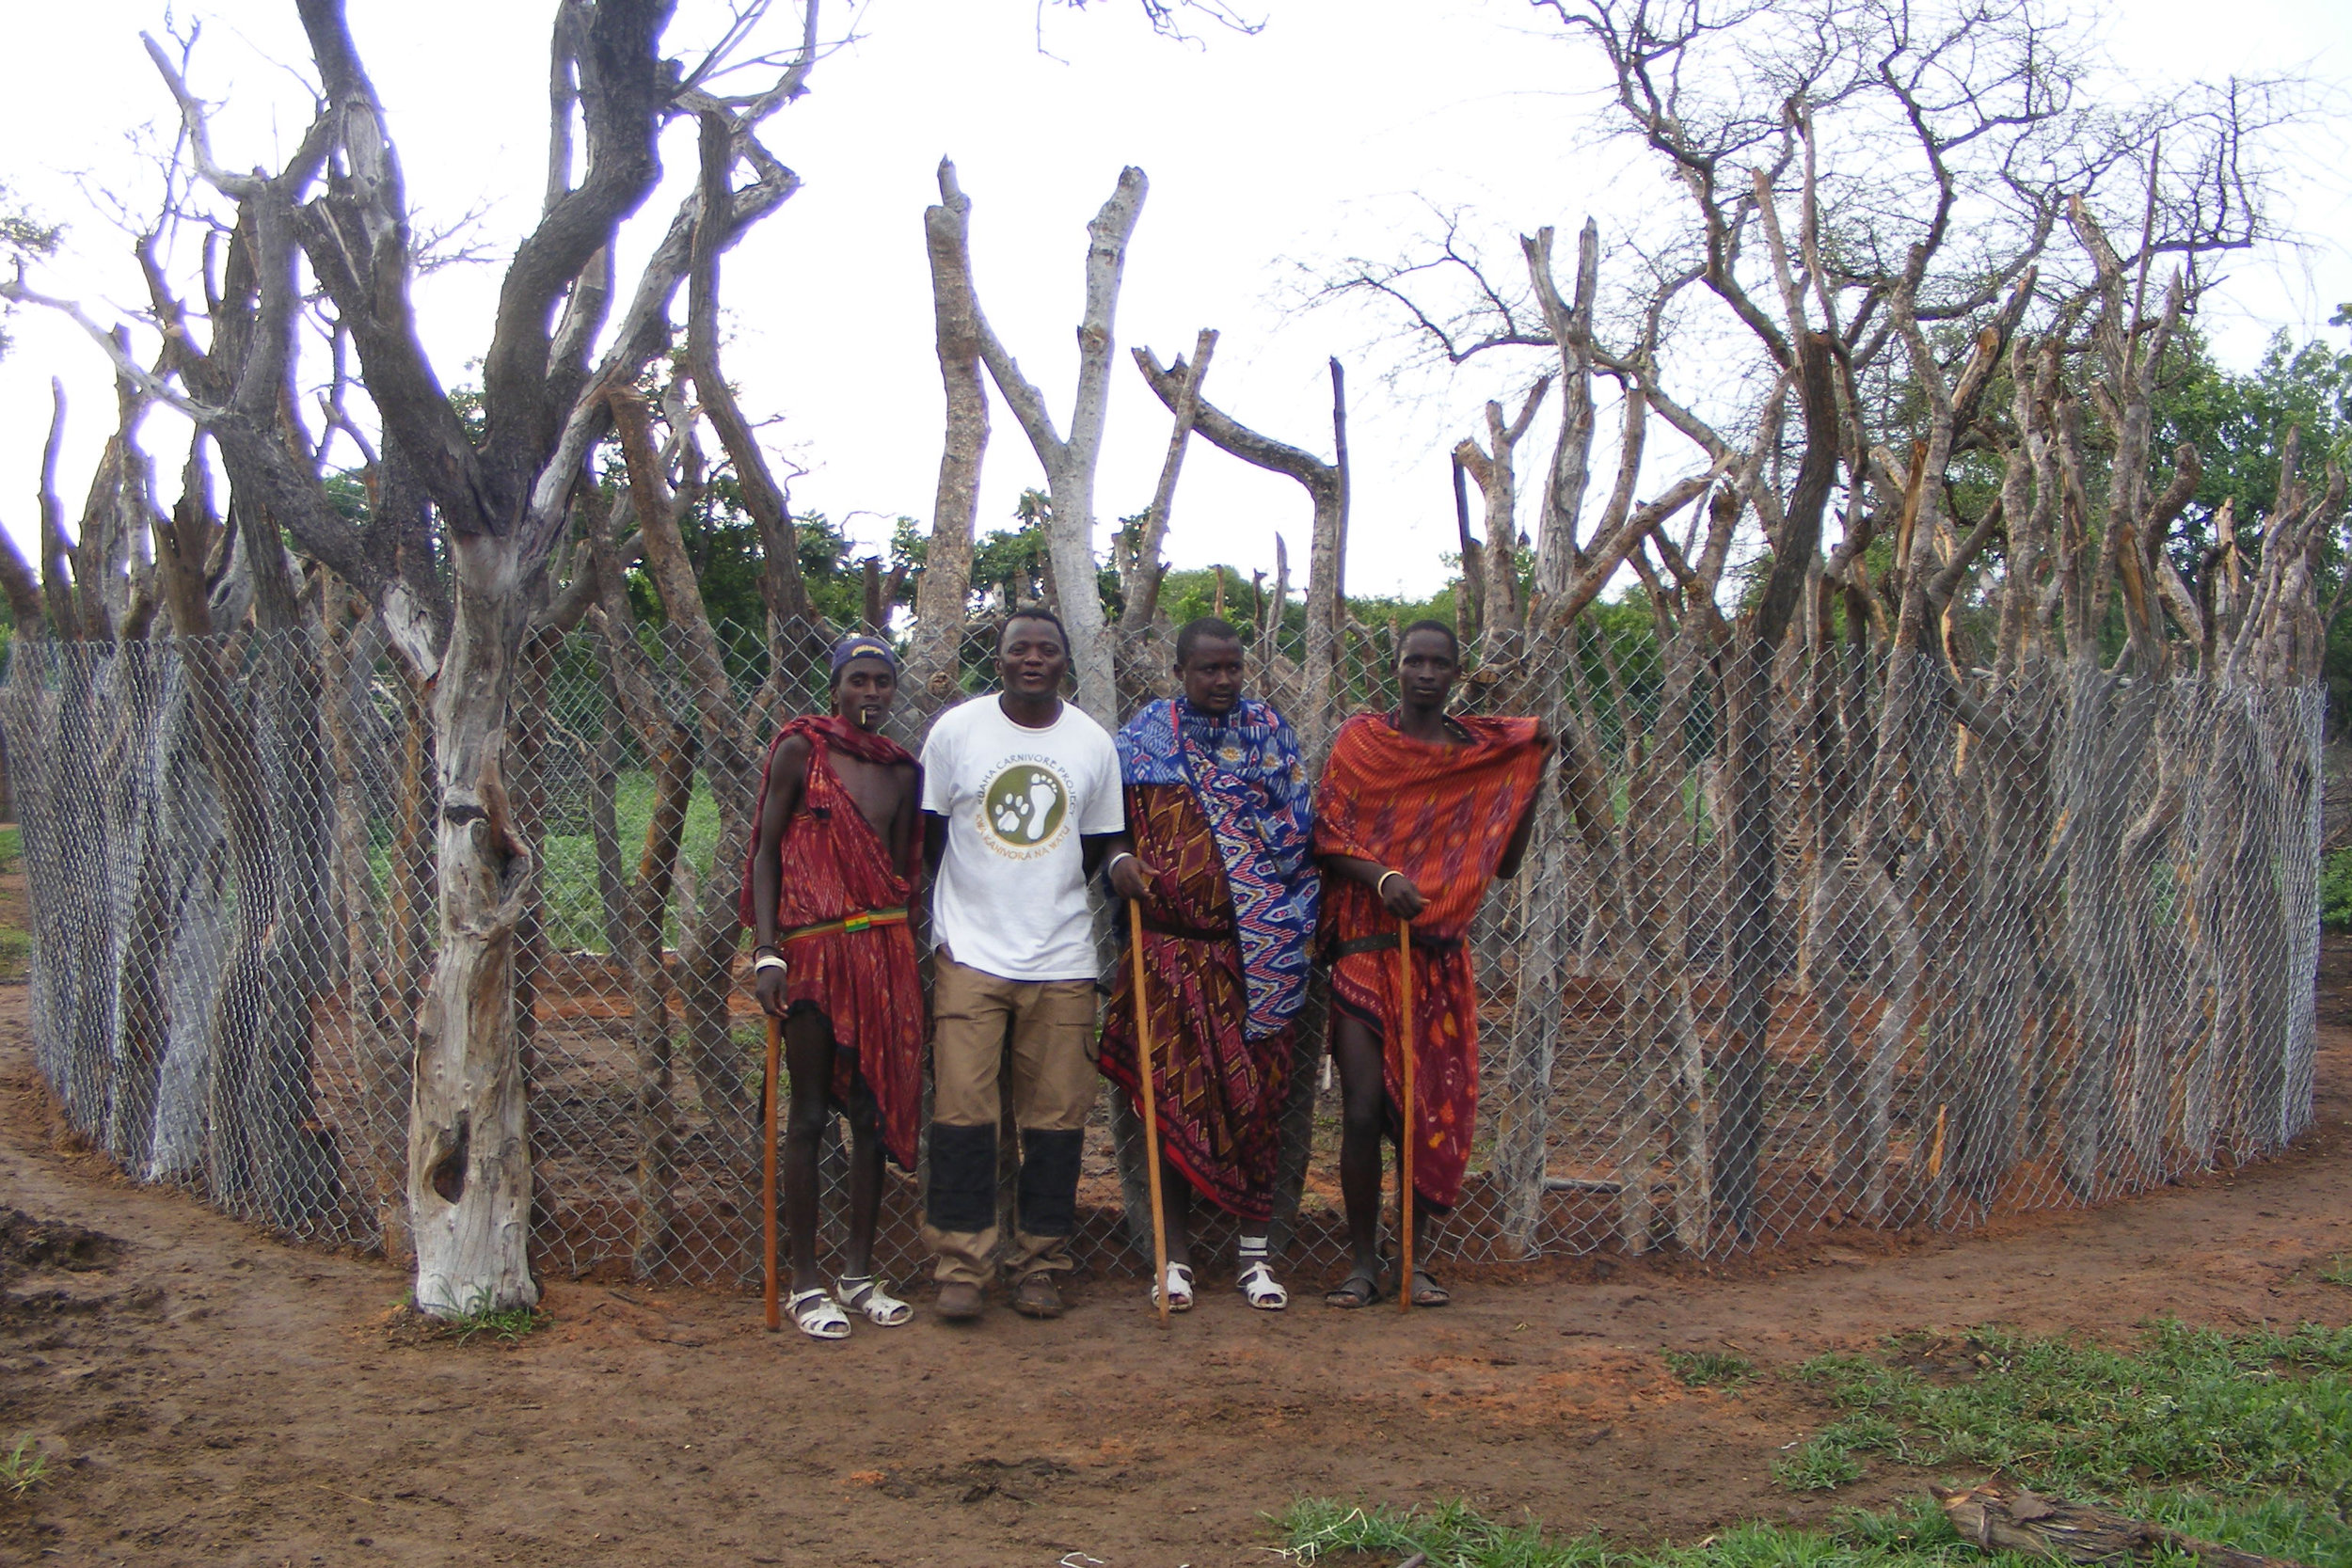 Improved boma to protect livestock from lion attacks. PC: Jon Erickson